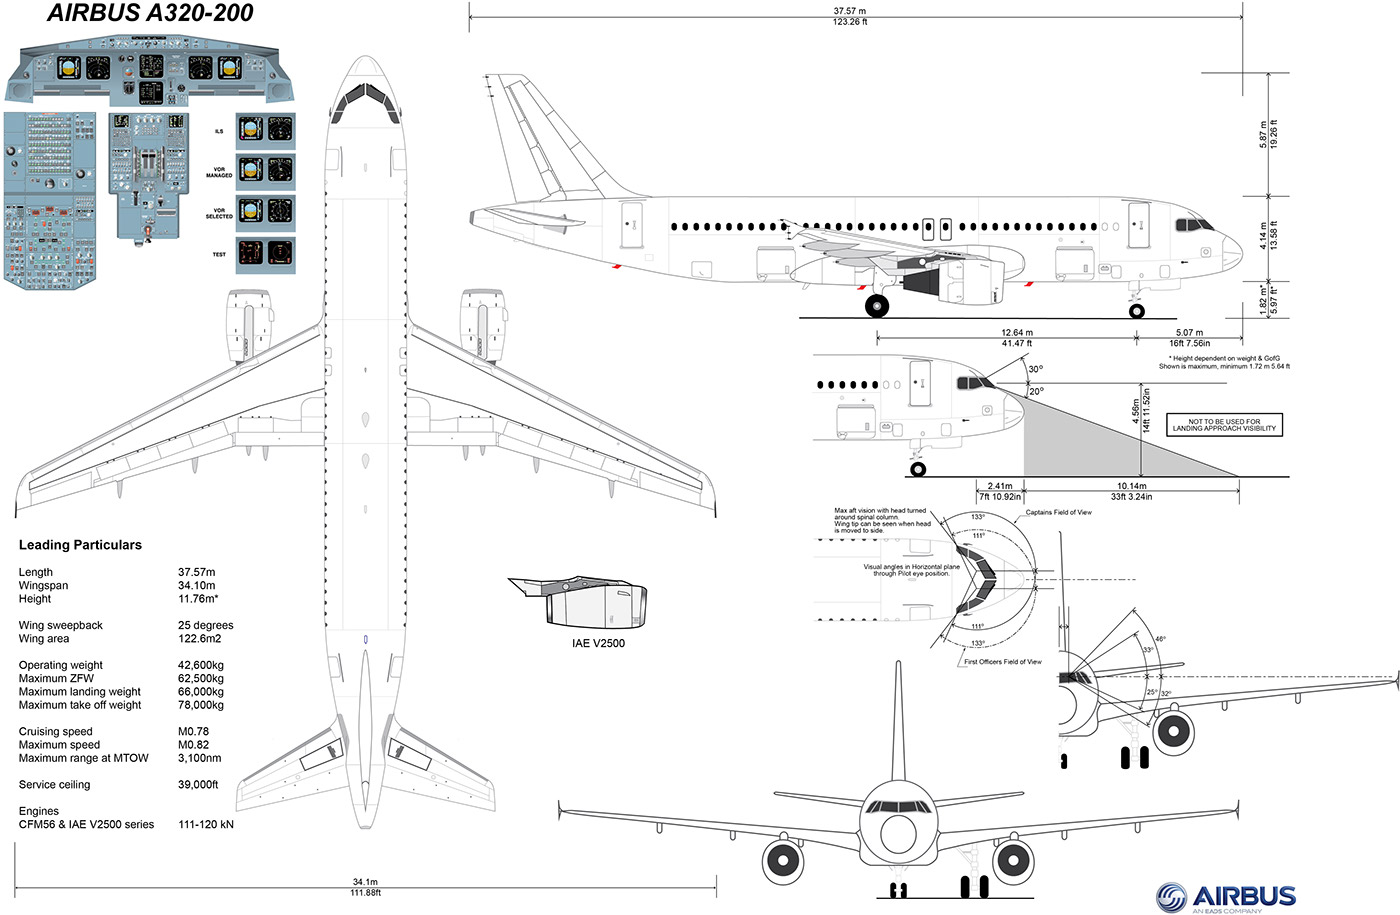 Airbus A320 Aircraft Details On Behance